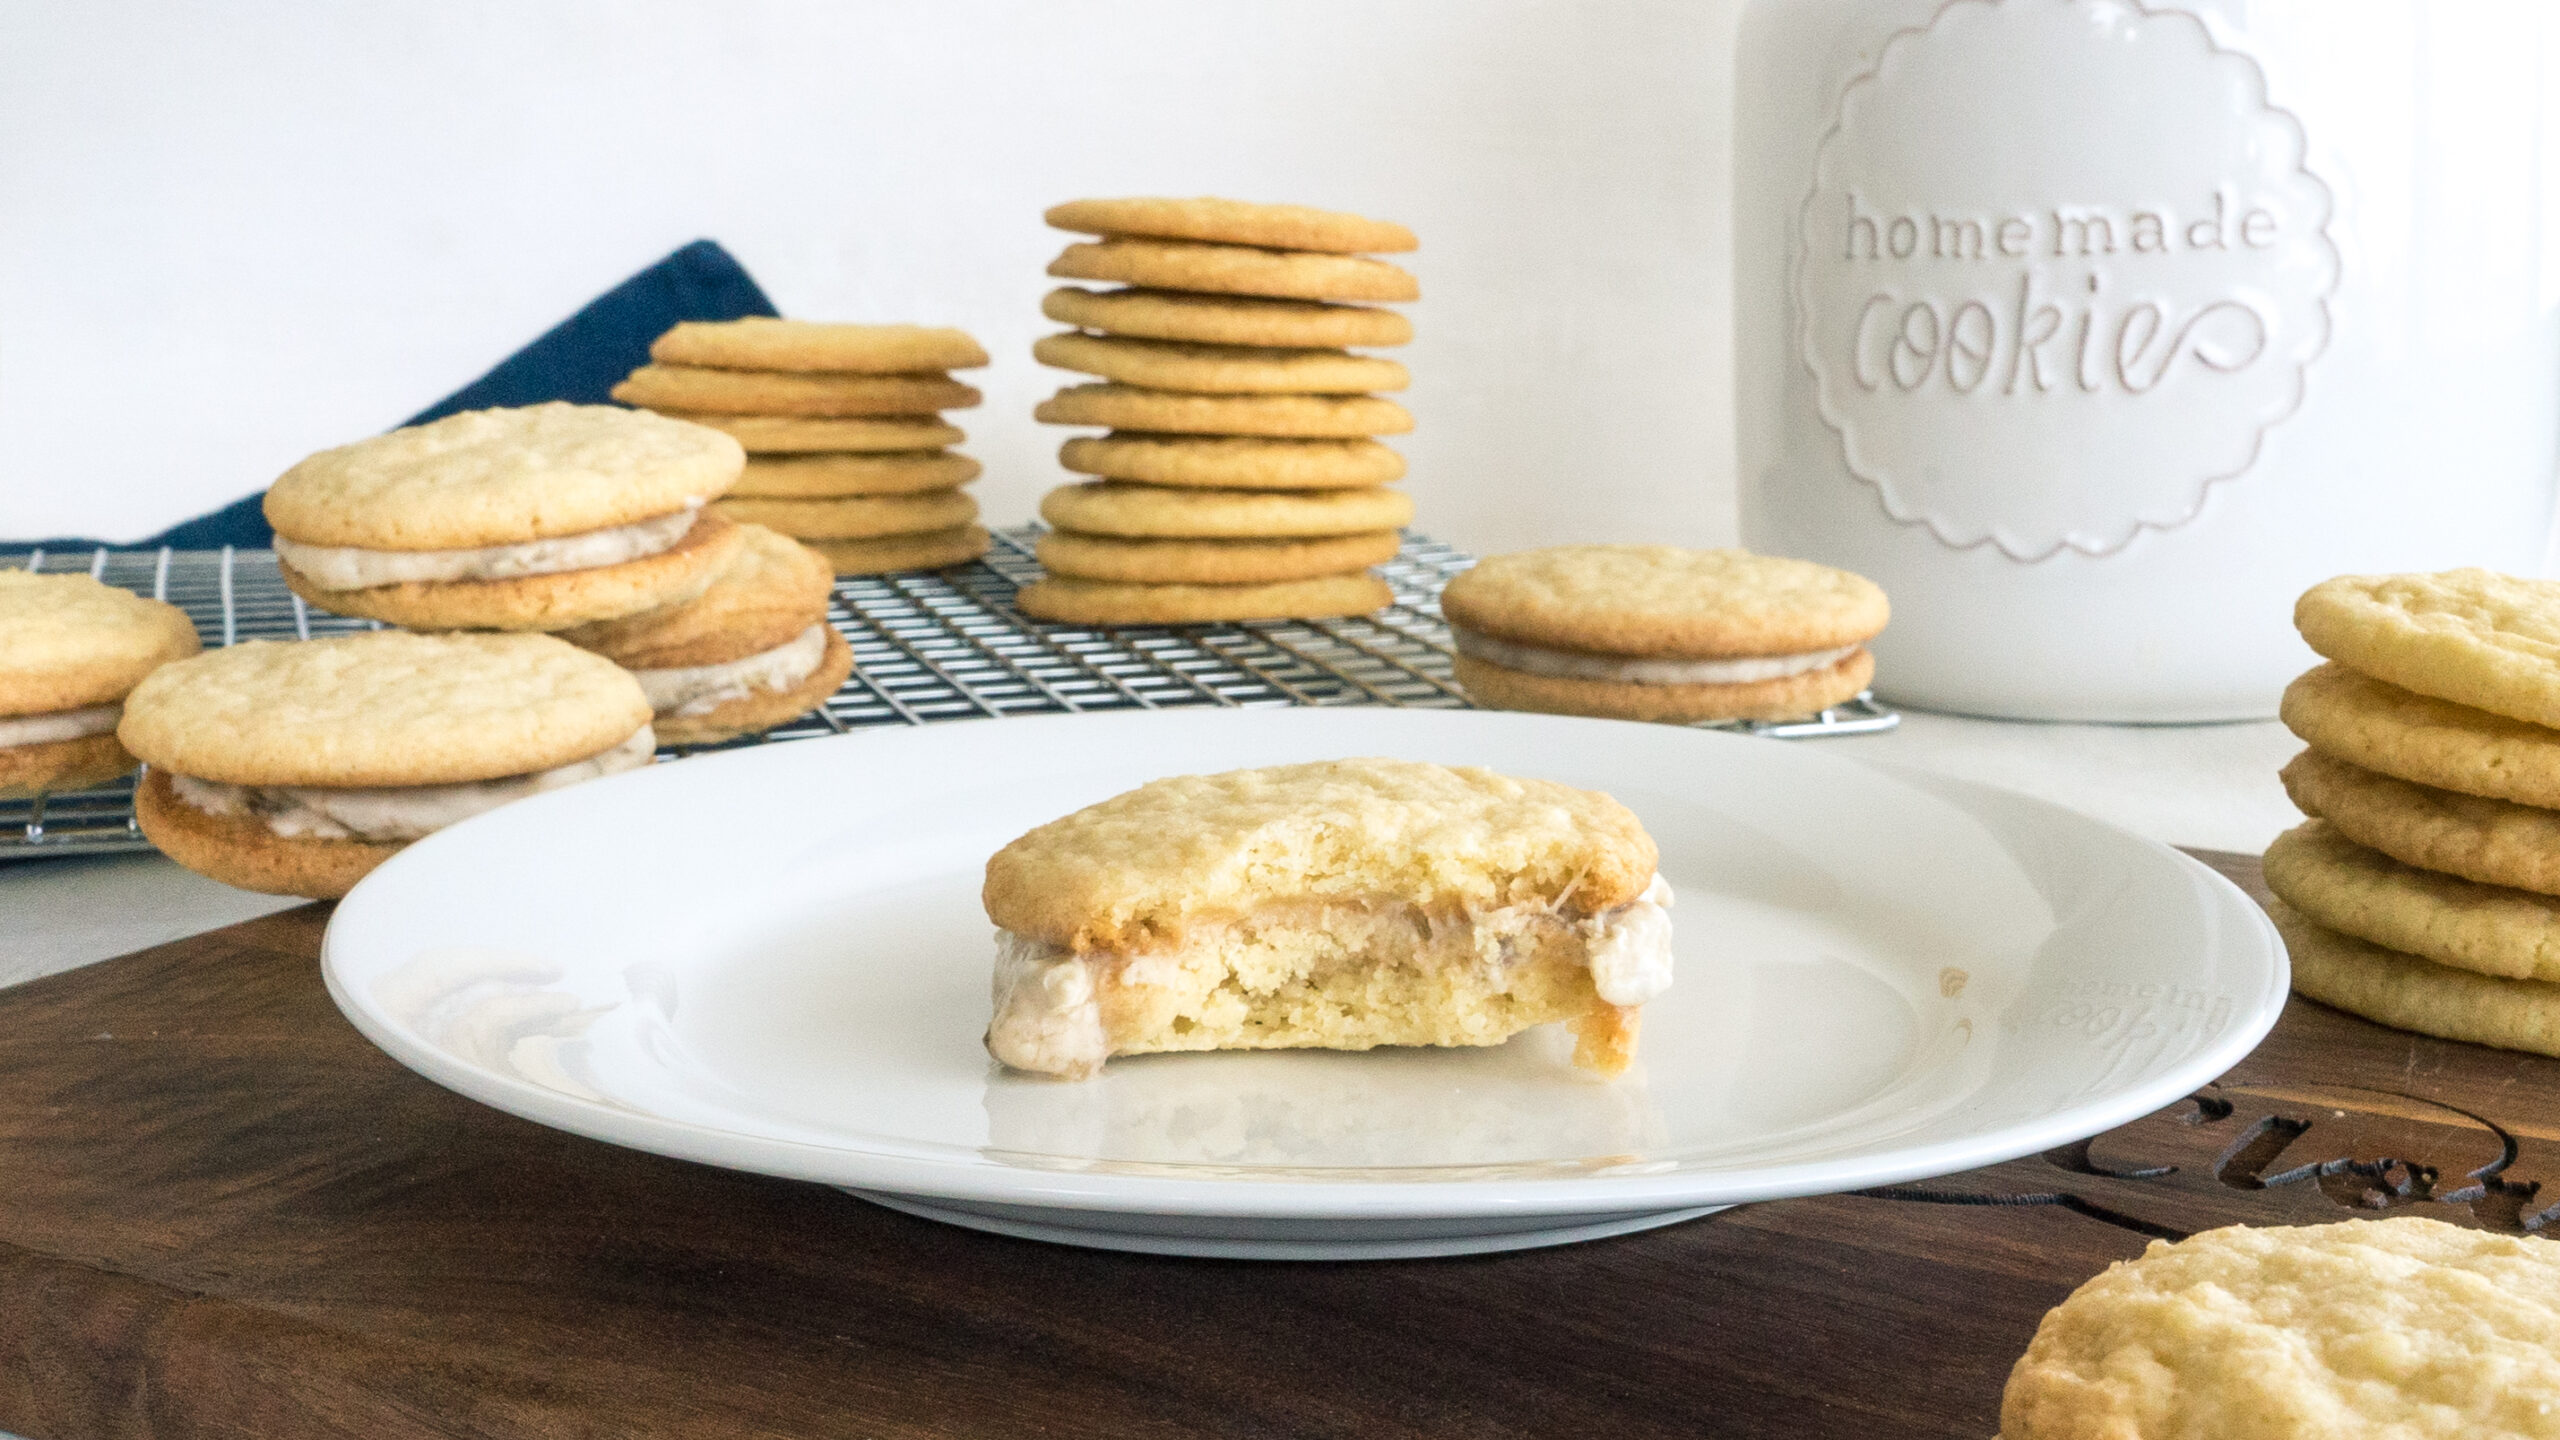 Banana Cream Cookie Sandwiches